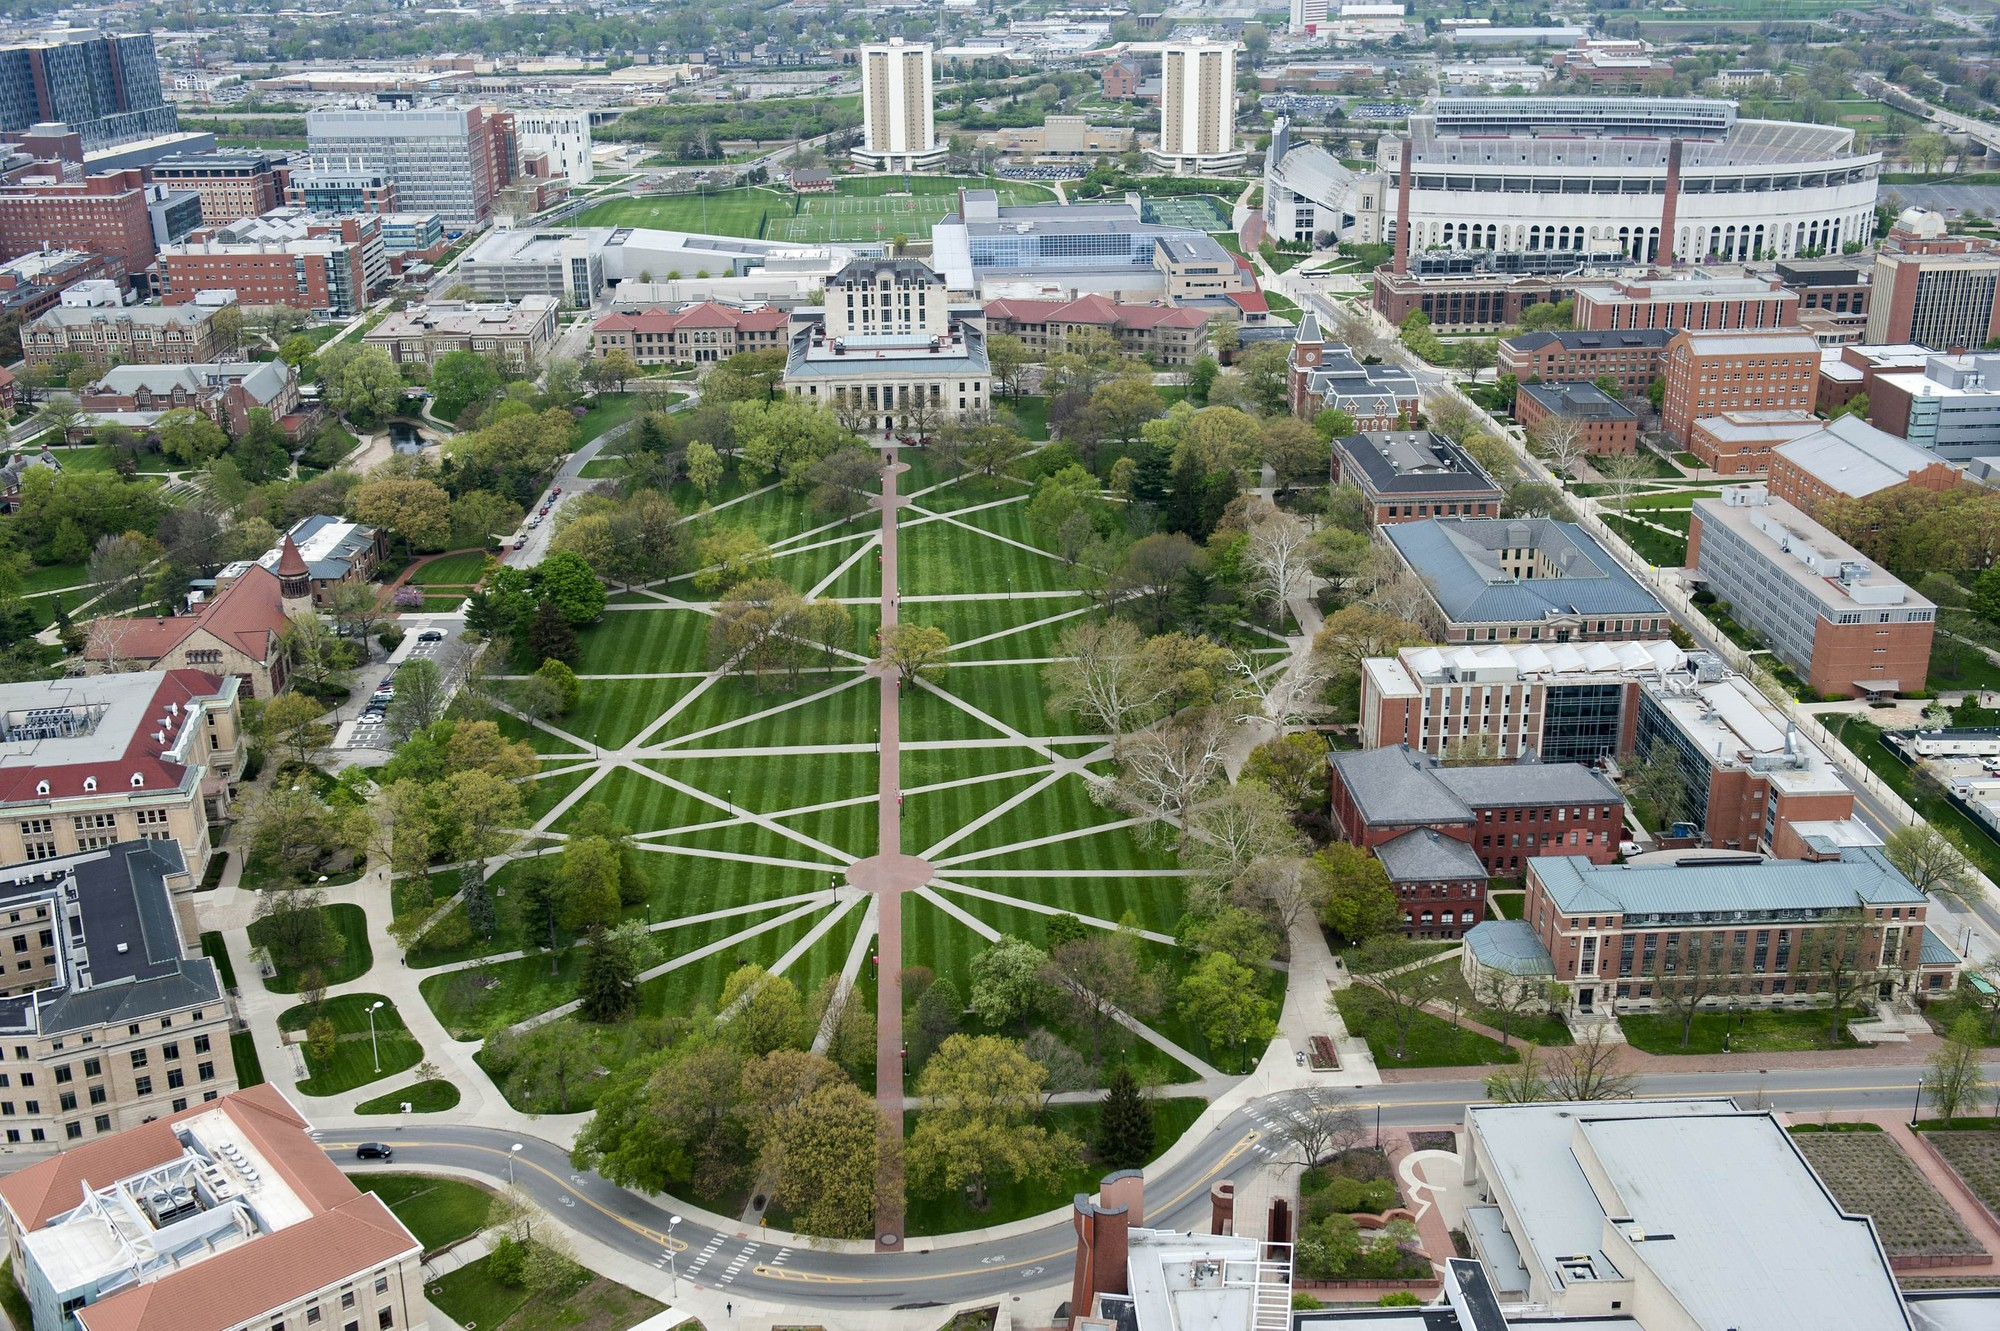 Aerial view of The Ohio State University campus